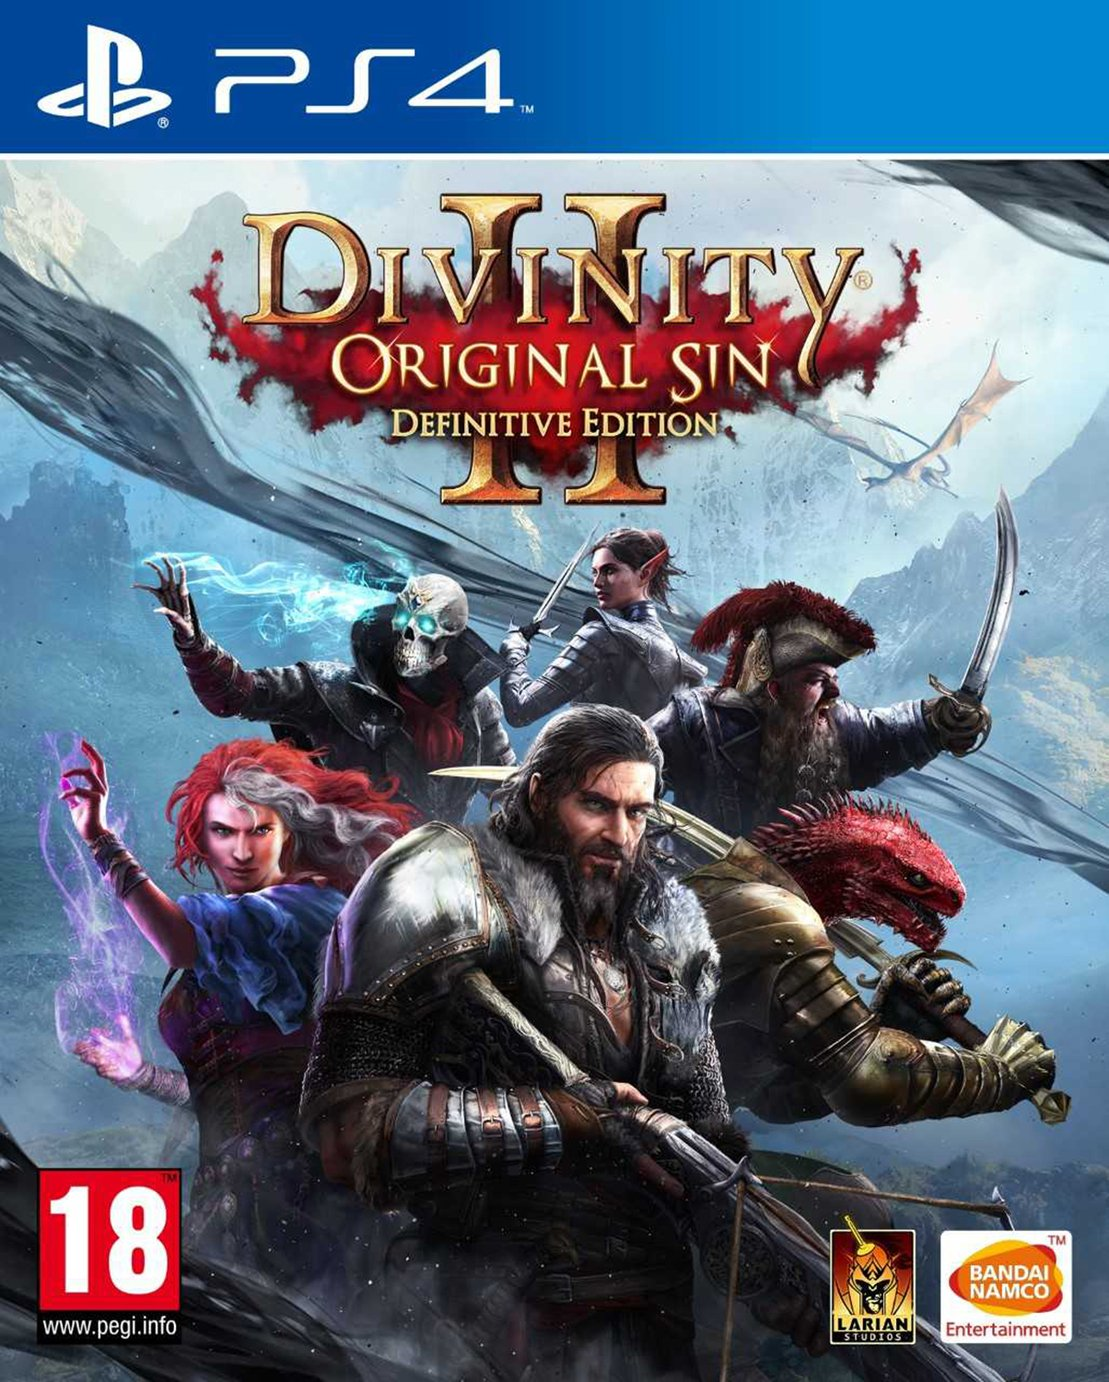 Divinity: Original Sin 2 Definitive Edn PS4 Game